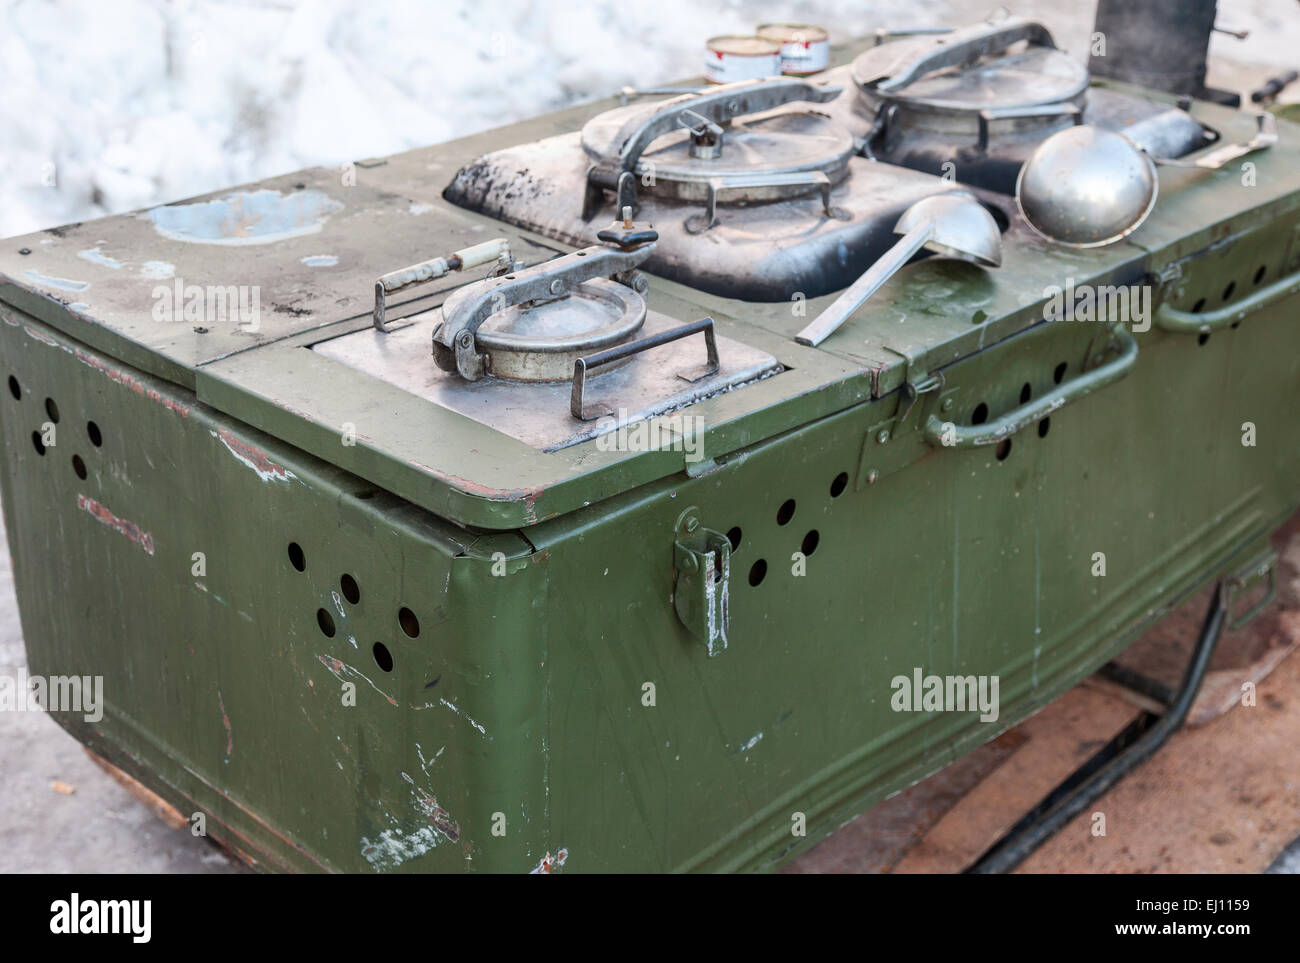 Mobile metal kitchen stove to feed soldiers - Stock Image